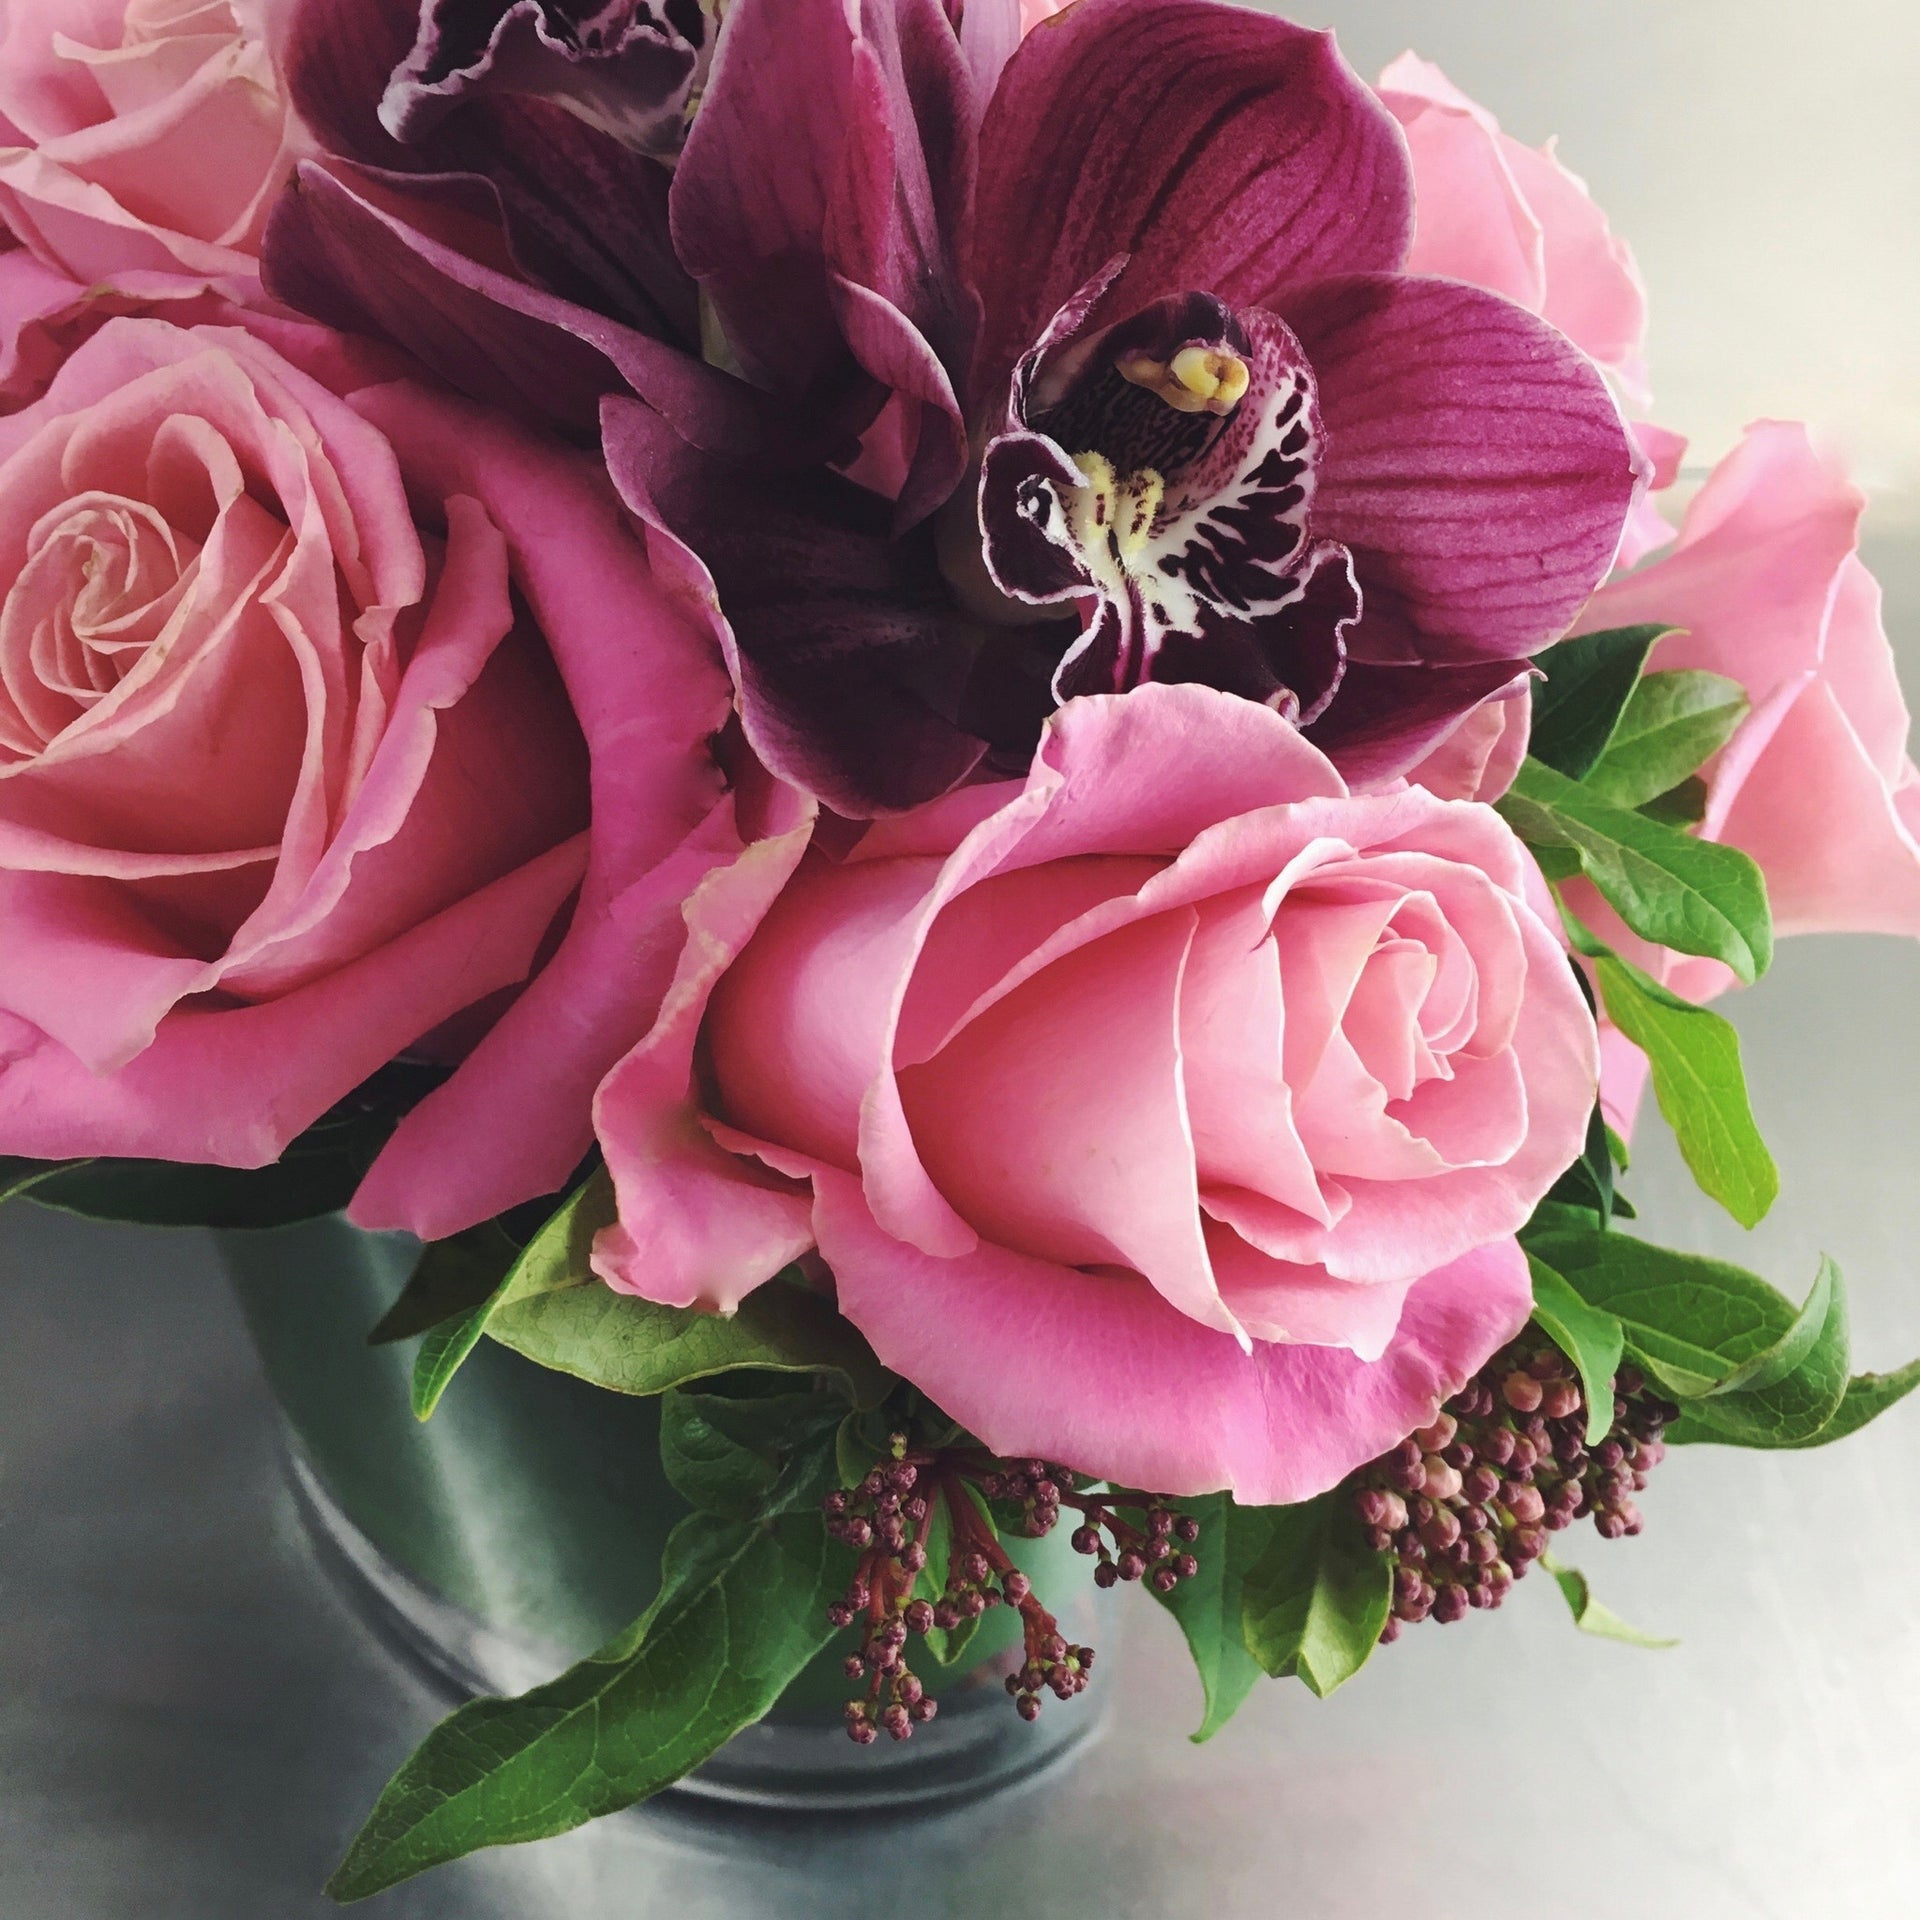 Pink roses and burgundy cymbidium orchid.